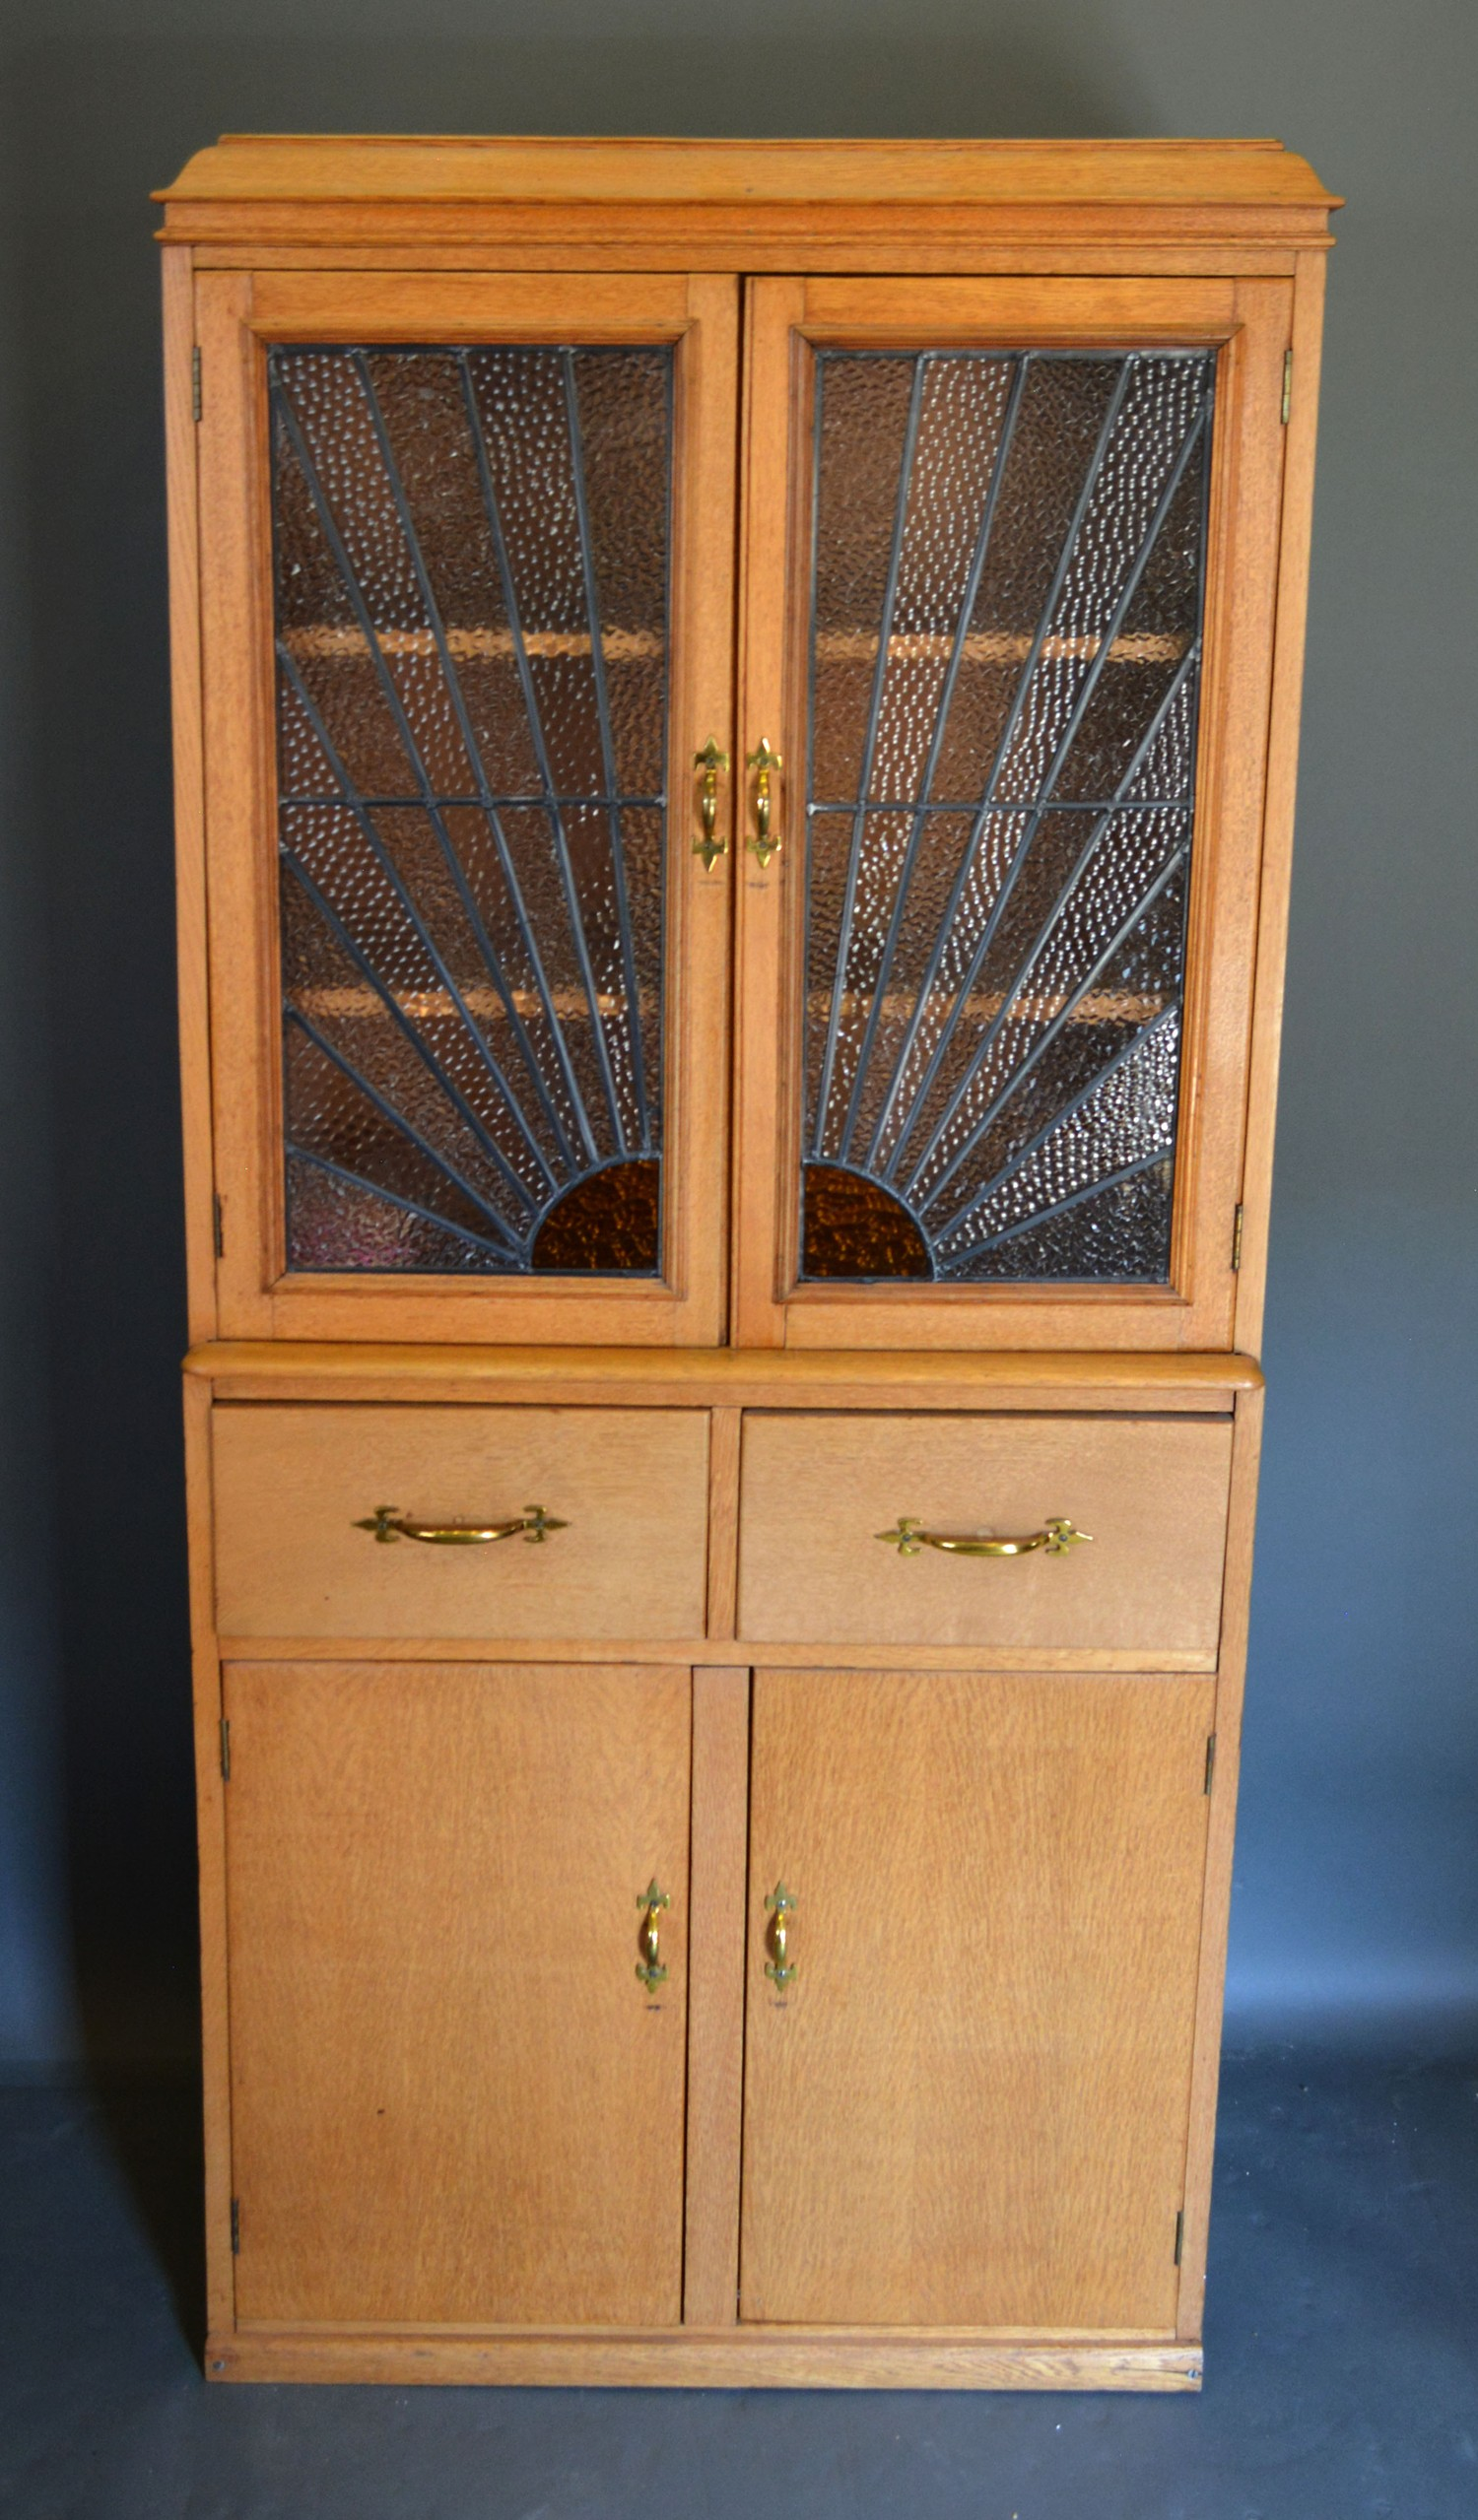 An early 20th century side cabin with two sunburst stained glass doors, the lower section with two - Image 2 of 2